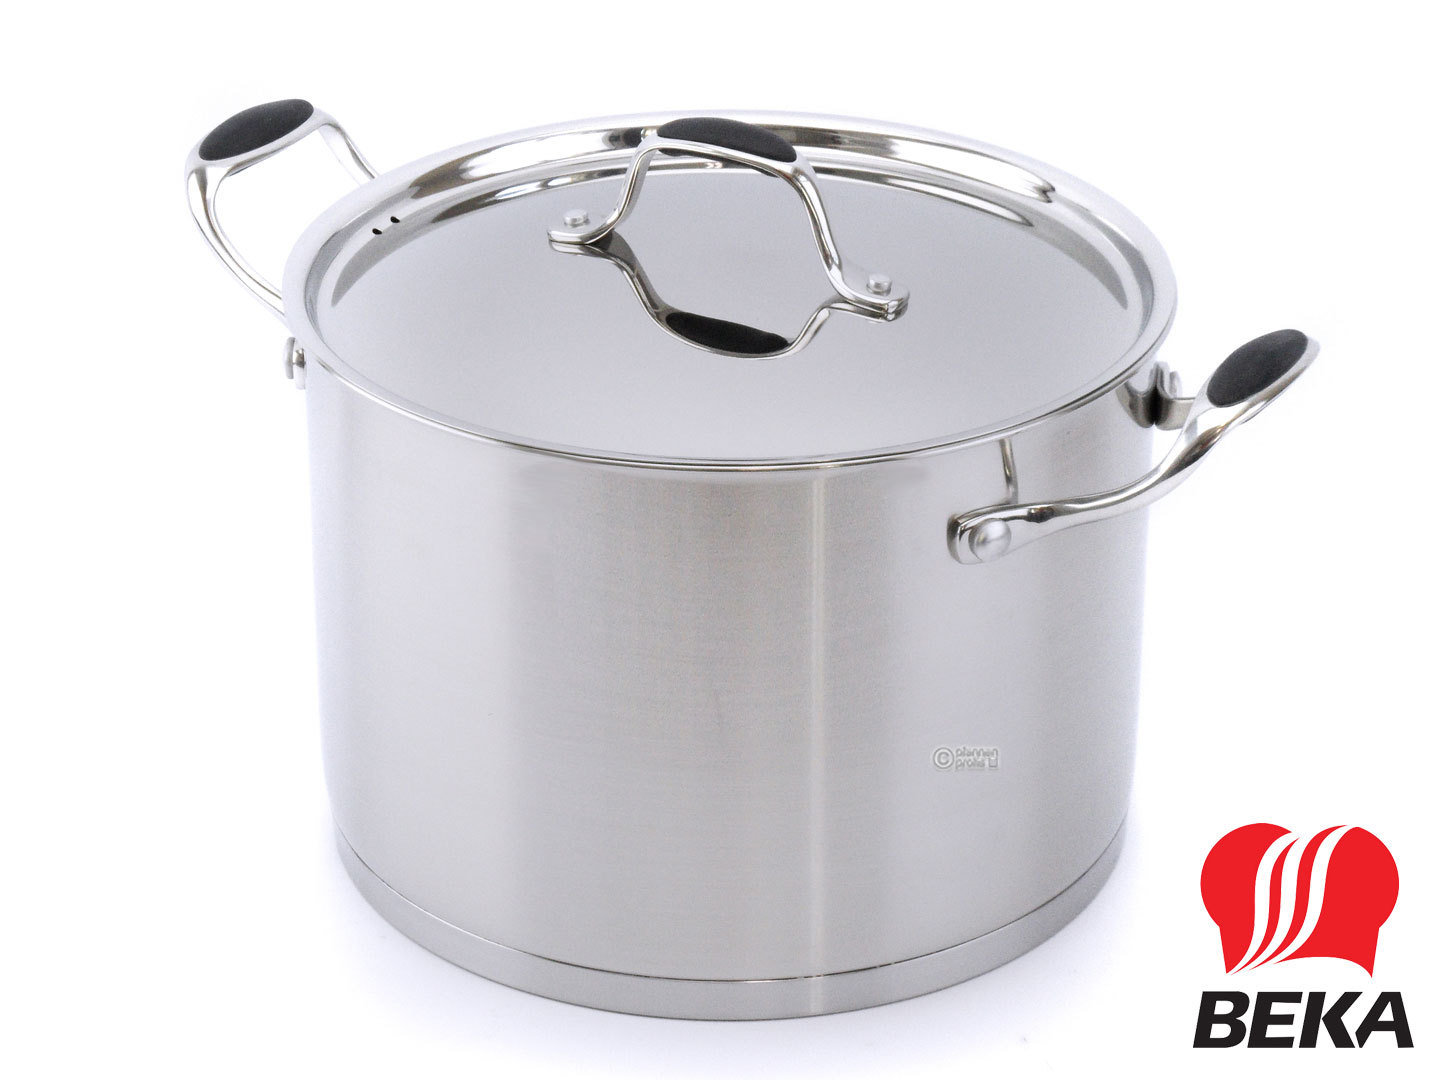 BEKA casserole SUAVE with lid 24 cm stainless steel